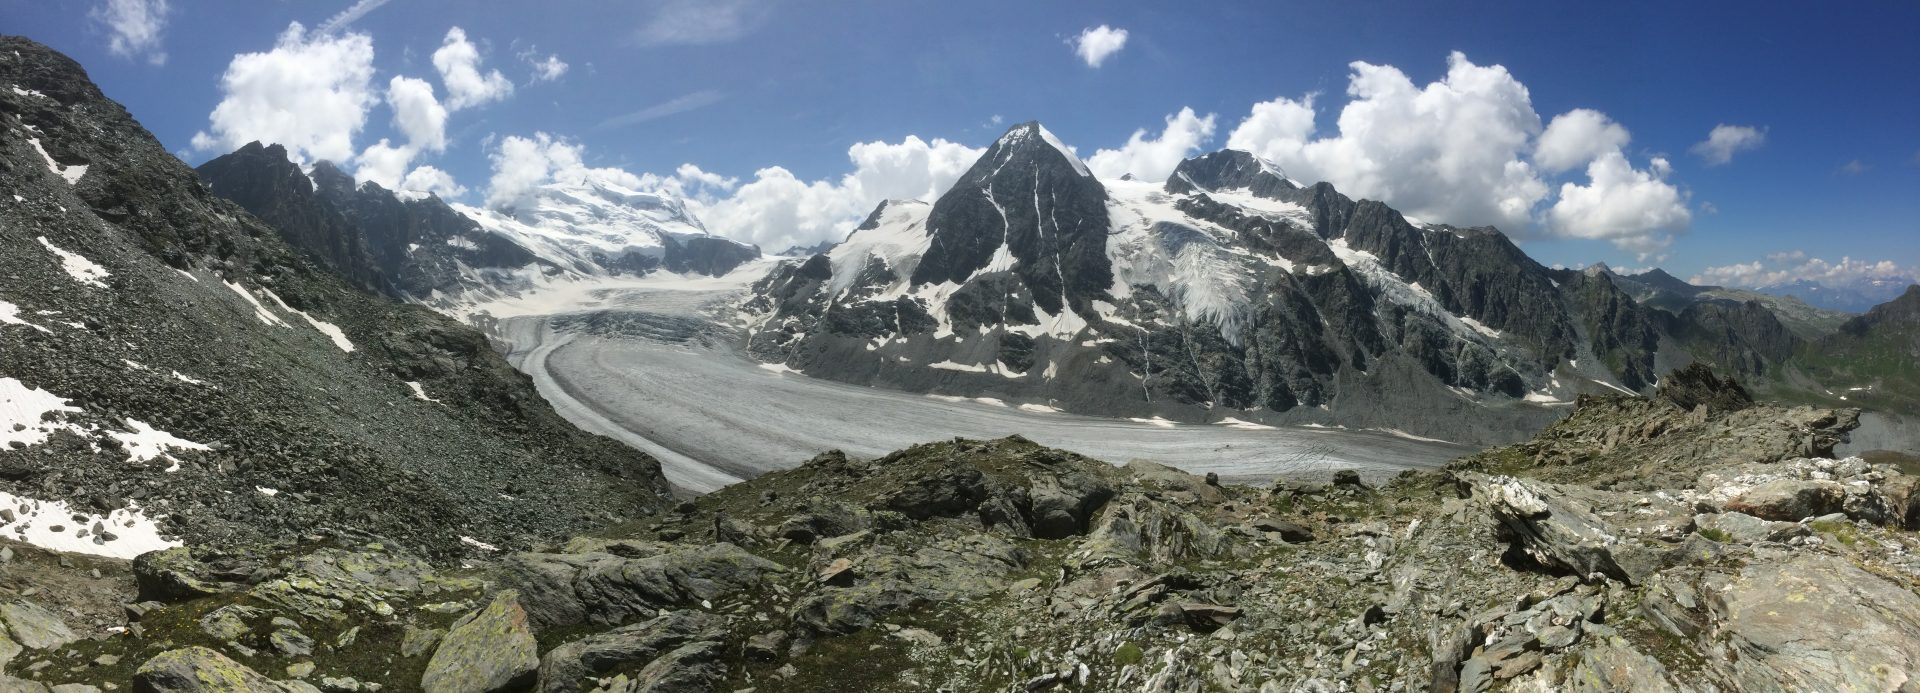 The 14th Emile Argand Conference on Alpine Geological Studies